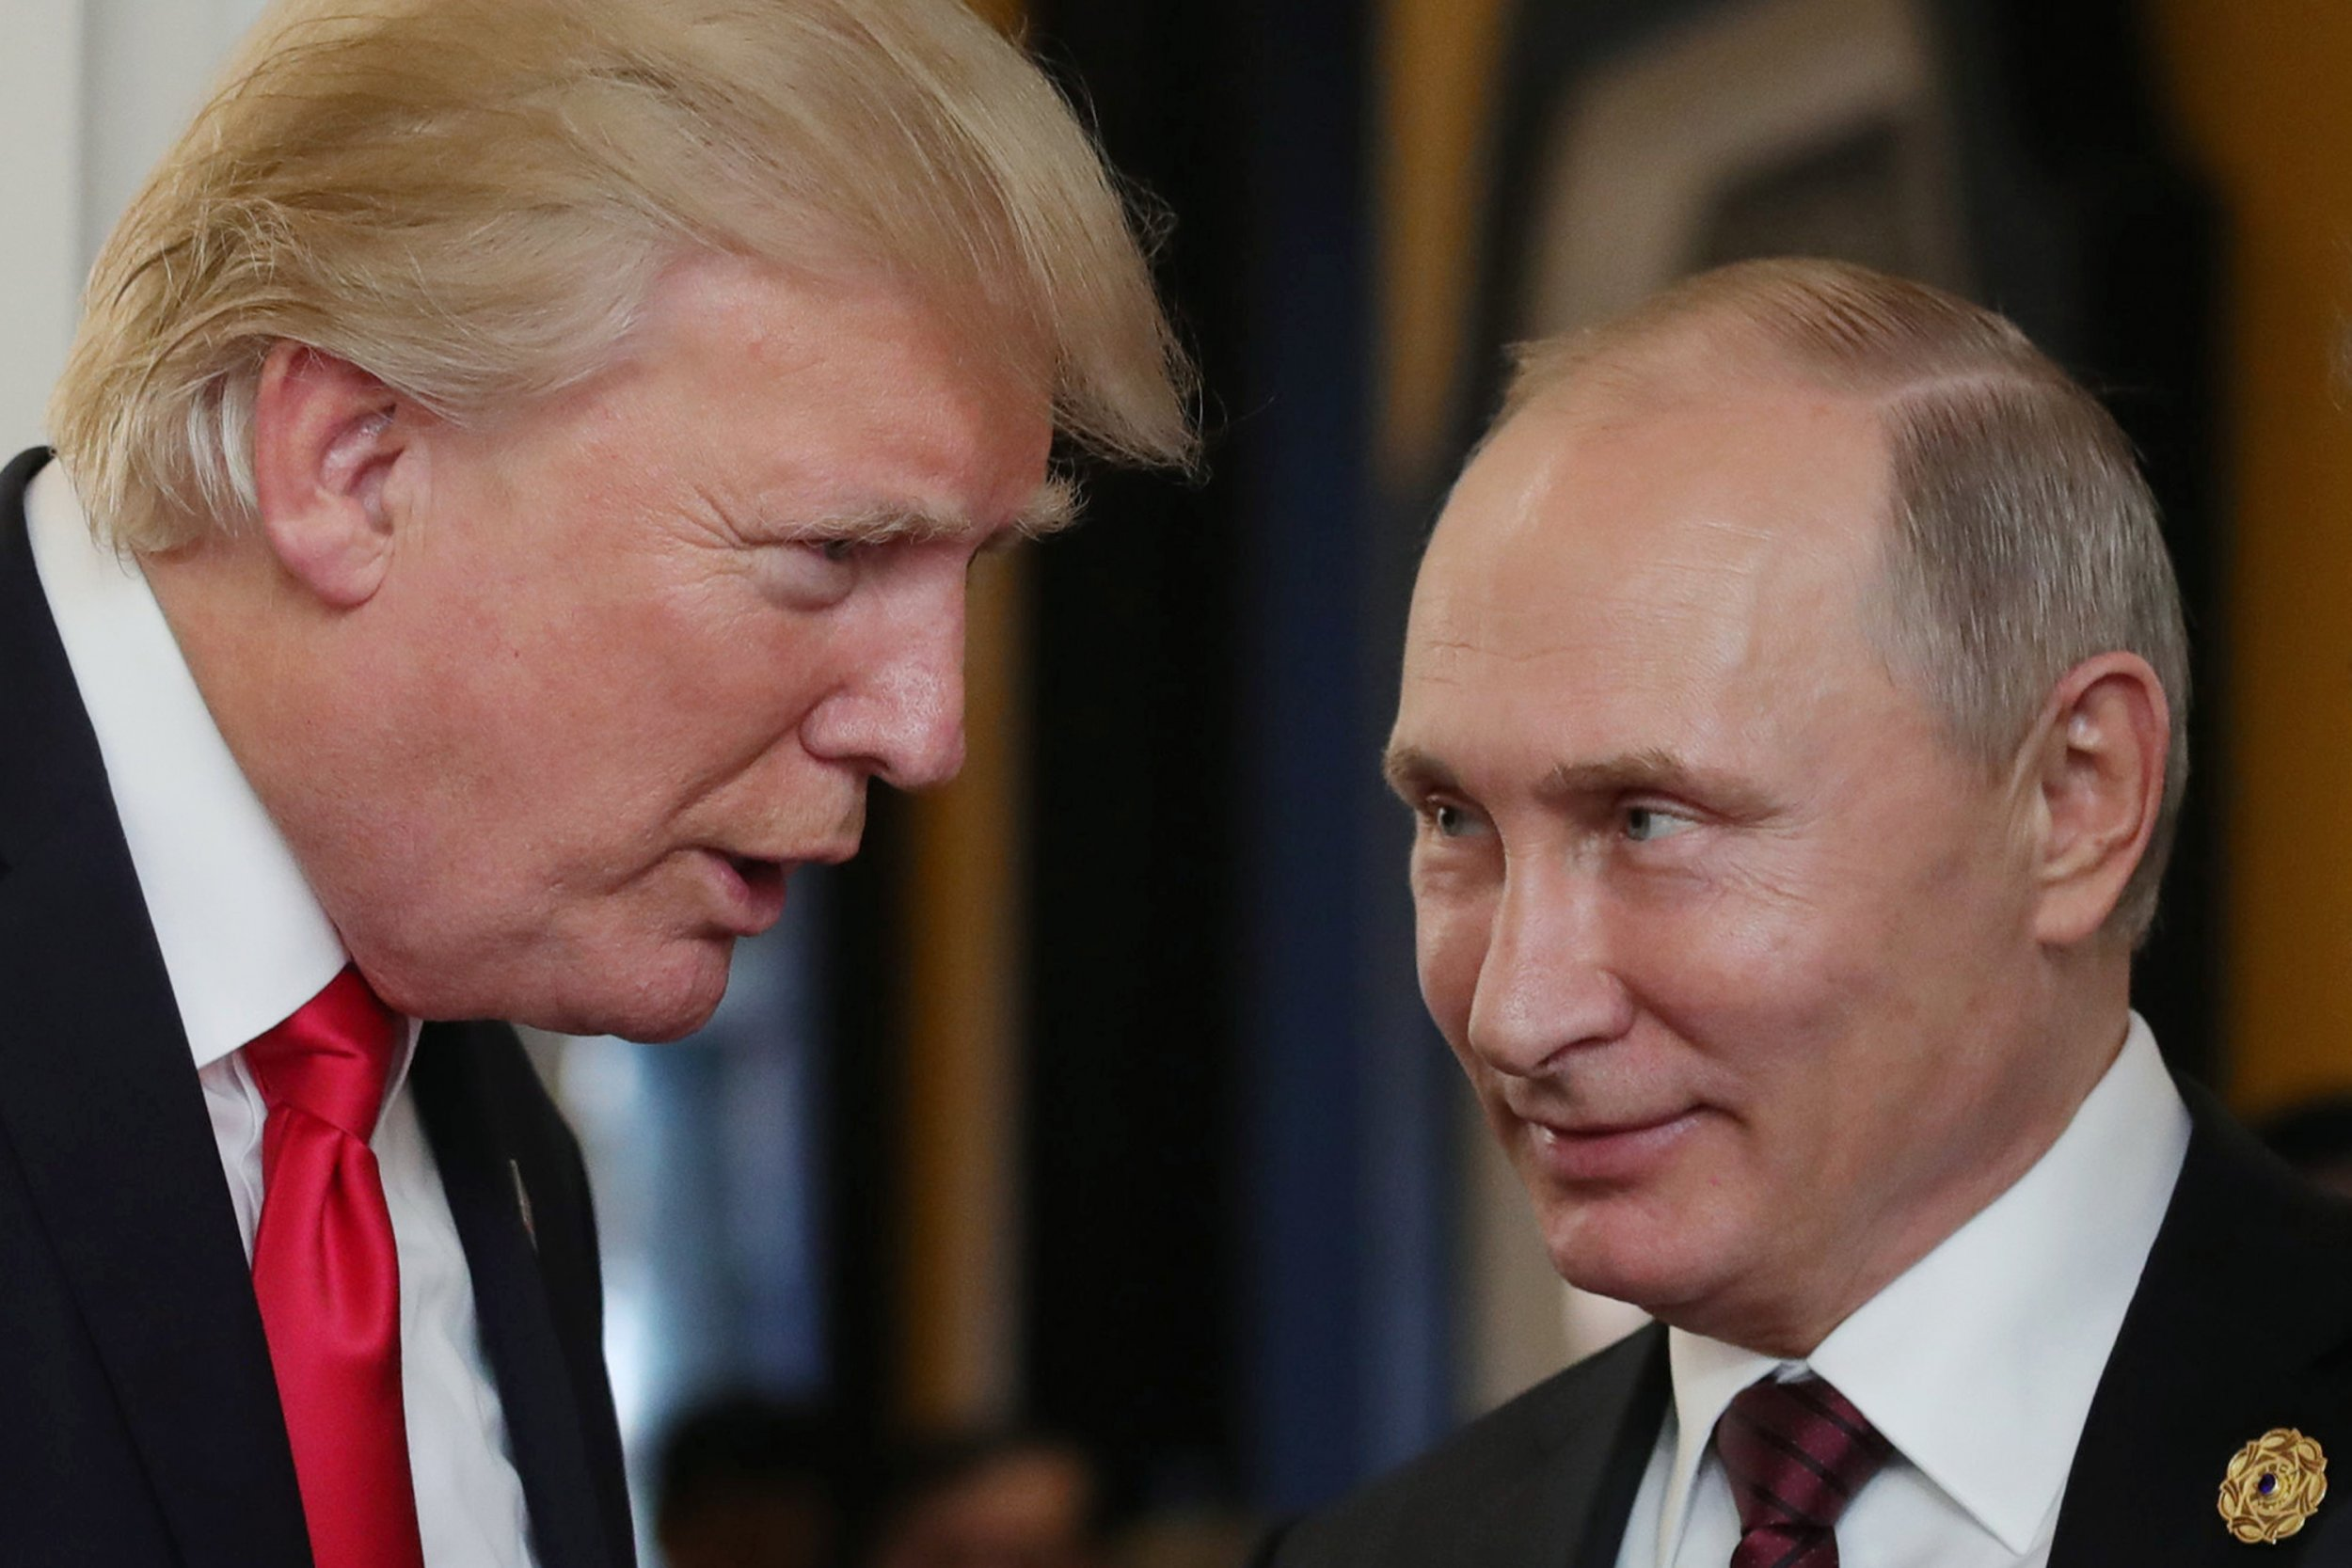 US President Donald Trump and Putin